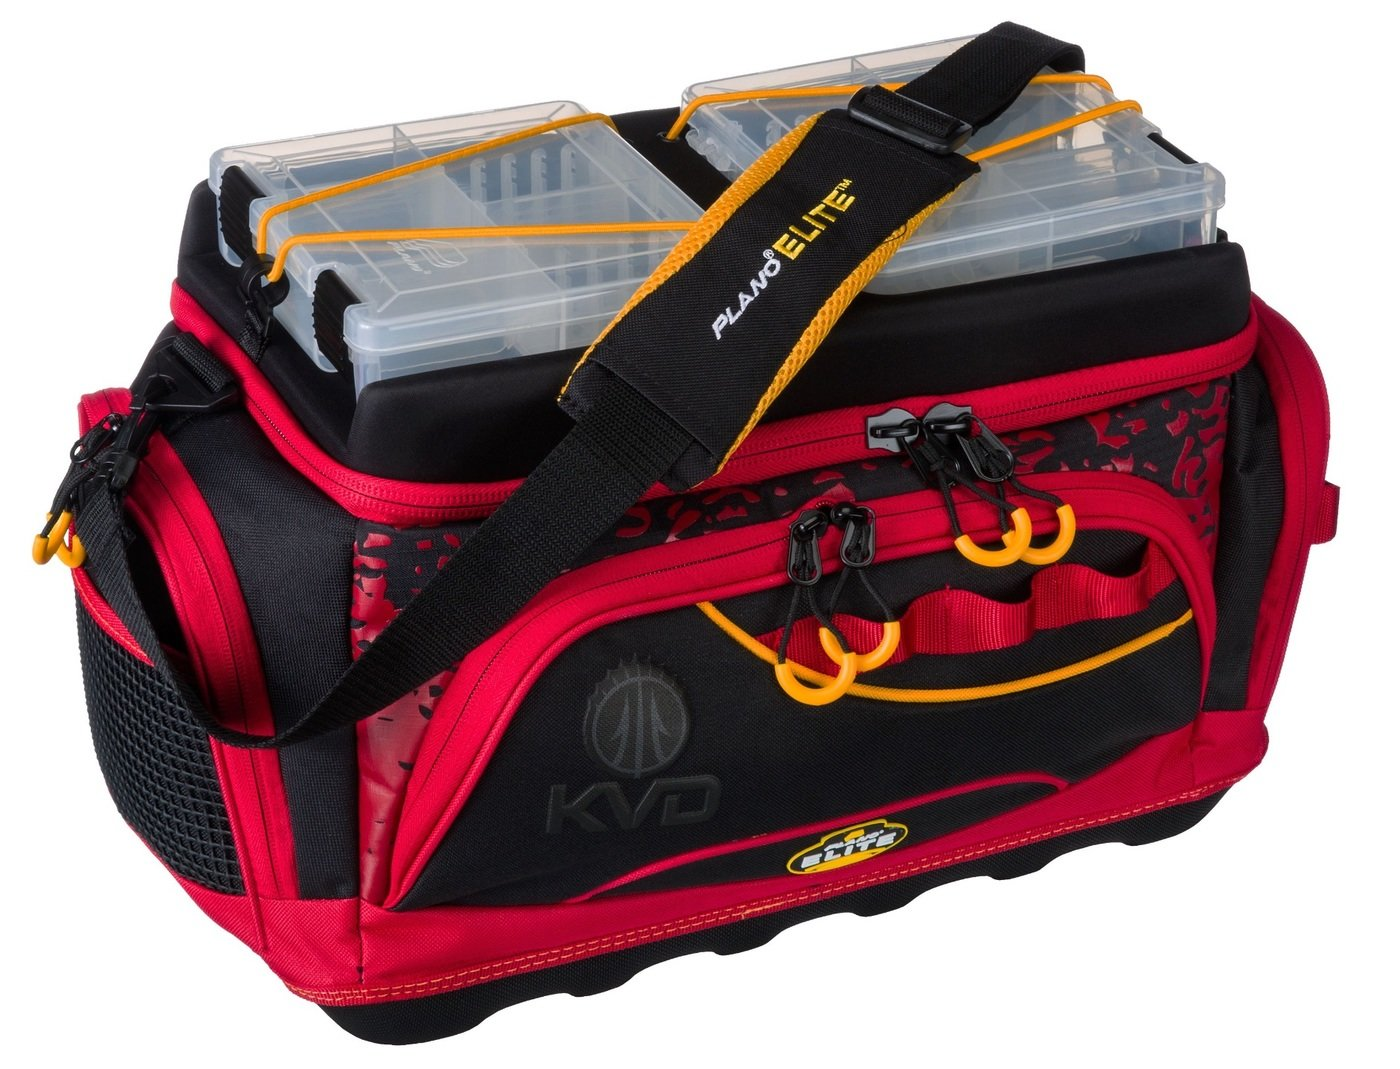 Plano Elite Kvd Signature Series Soft Sided Tackle Bag By Joseph Henney At Coroflot